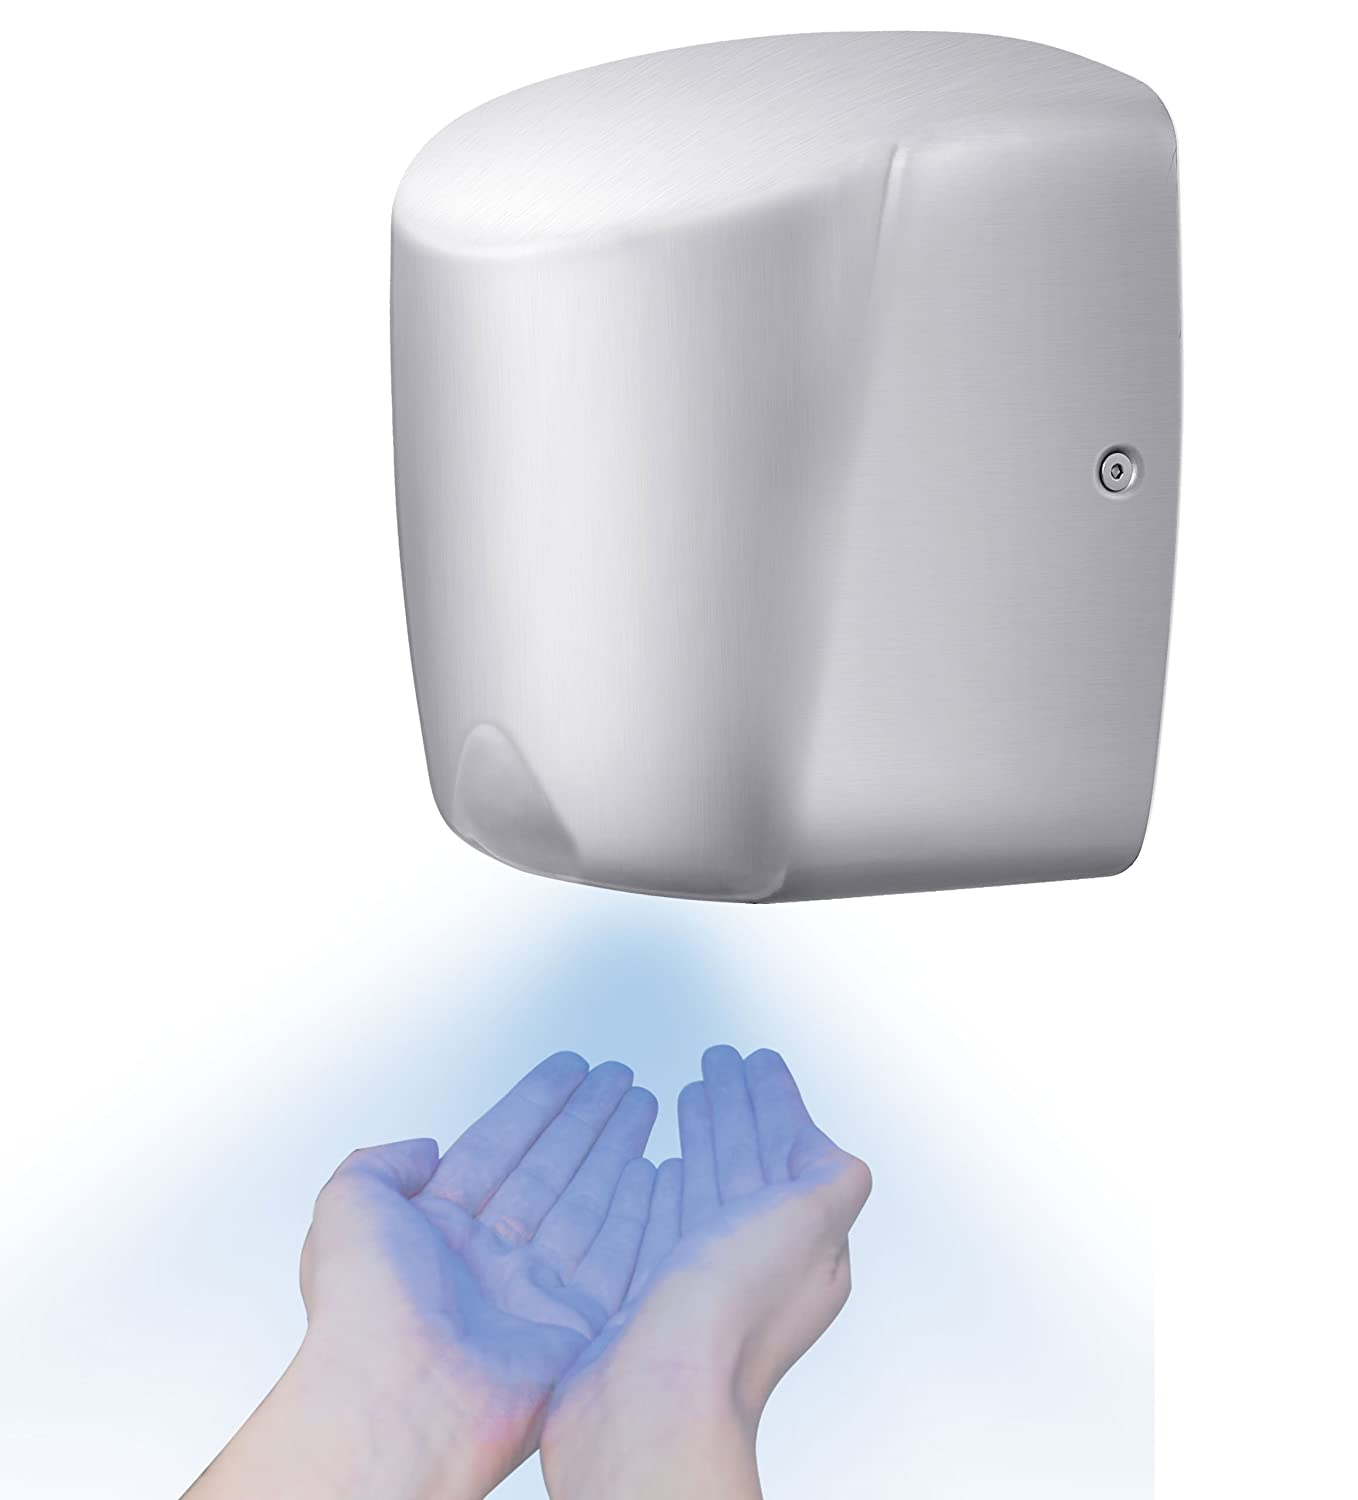 MINI JET HIGH SPEED HAND DRYER ELECTRIC AUTOMATIC COMMERCIAL BRUSHED STAINLESS STEEL